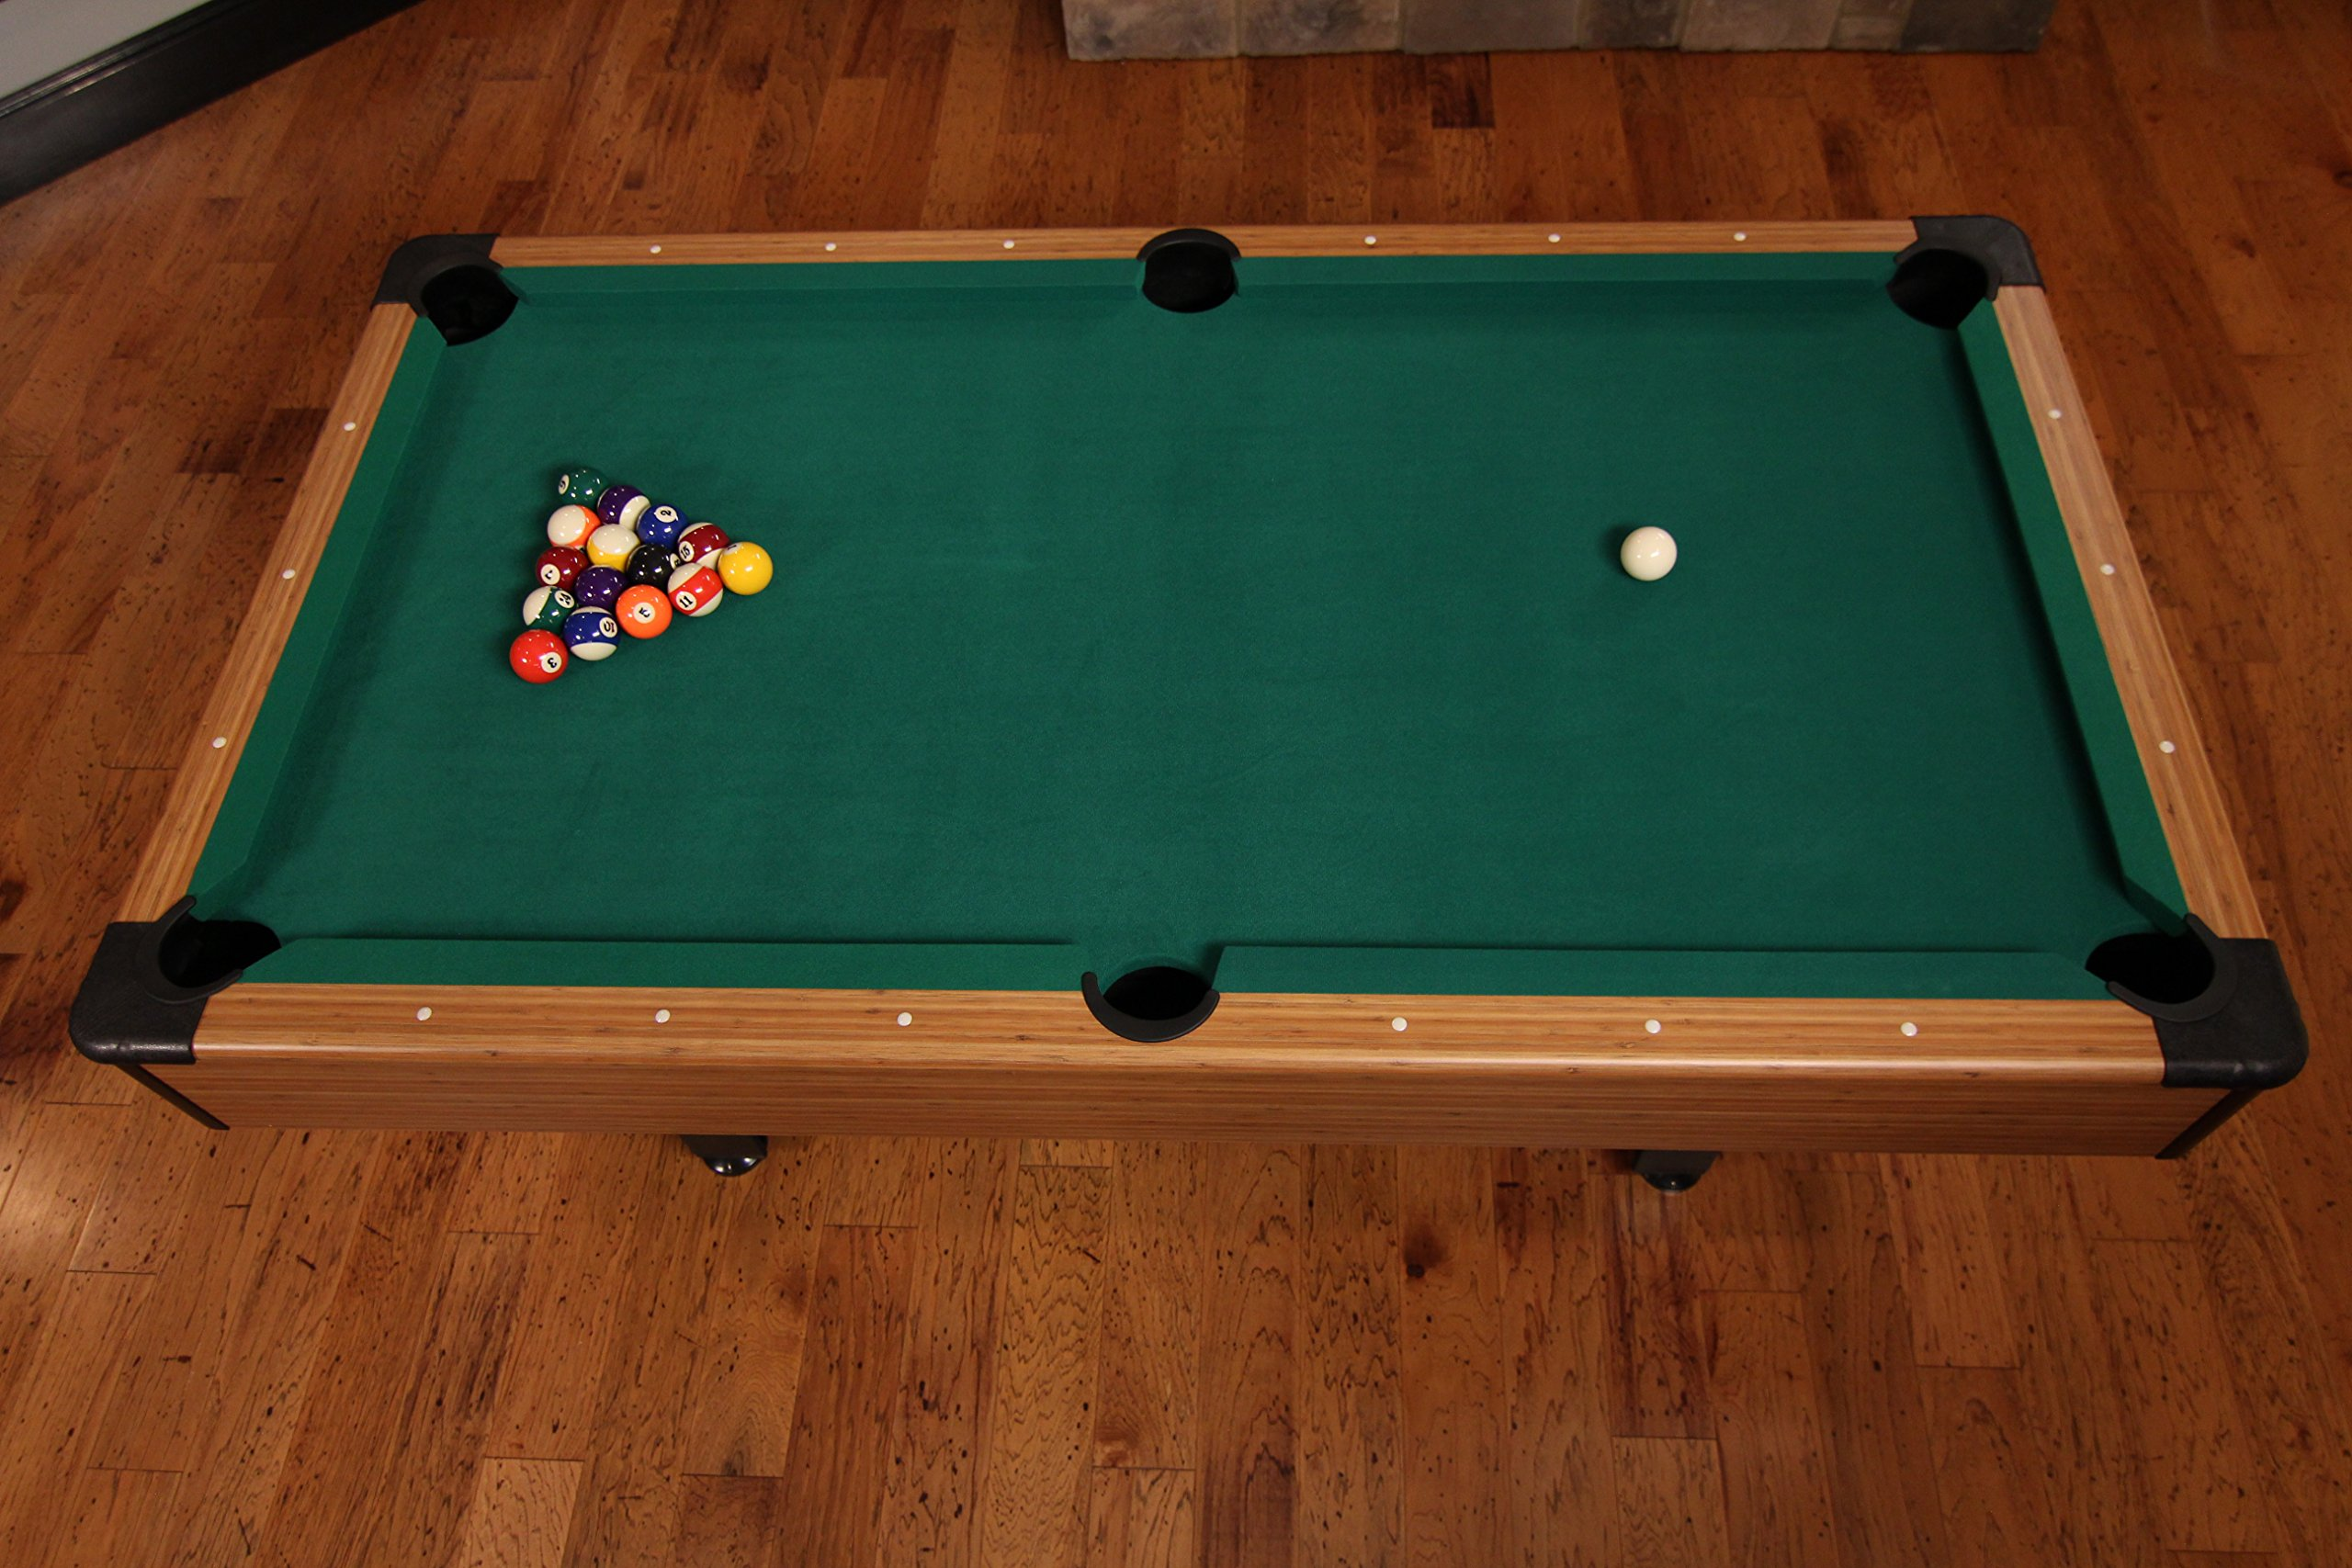 Mizerak Dynasty Space Saver 6.5' Billiard Table with Compact Design to Fit in Smaller Rooms, Leg Levelers for Perfectly Even Playing Surface, Double-sealed MDF Play-bed for Consistent Roll and Automatic Ball Return for Quick Game Reset by Mizerak (Image #12)